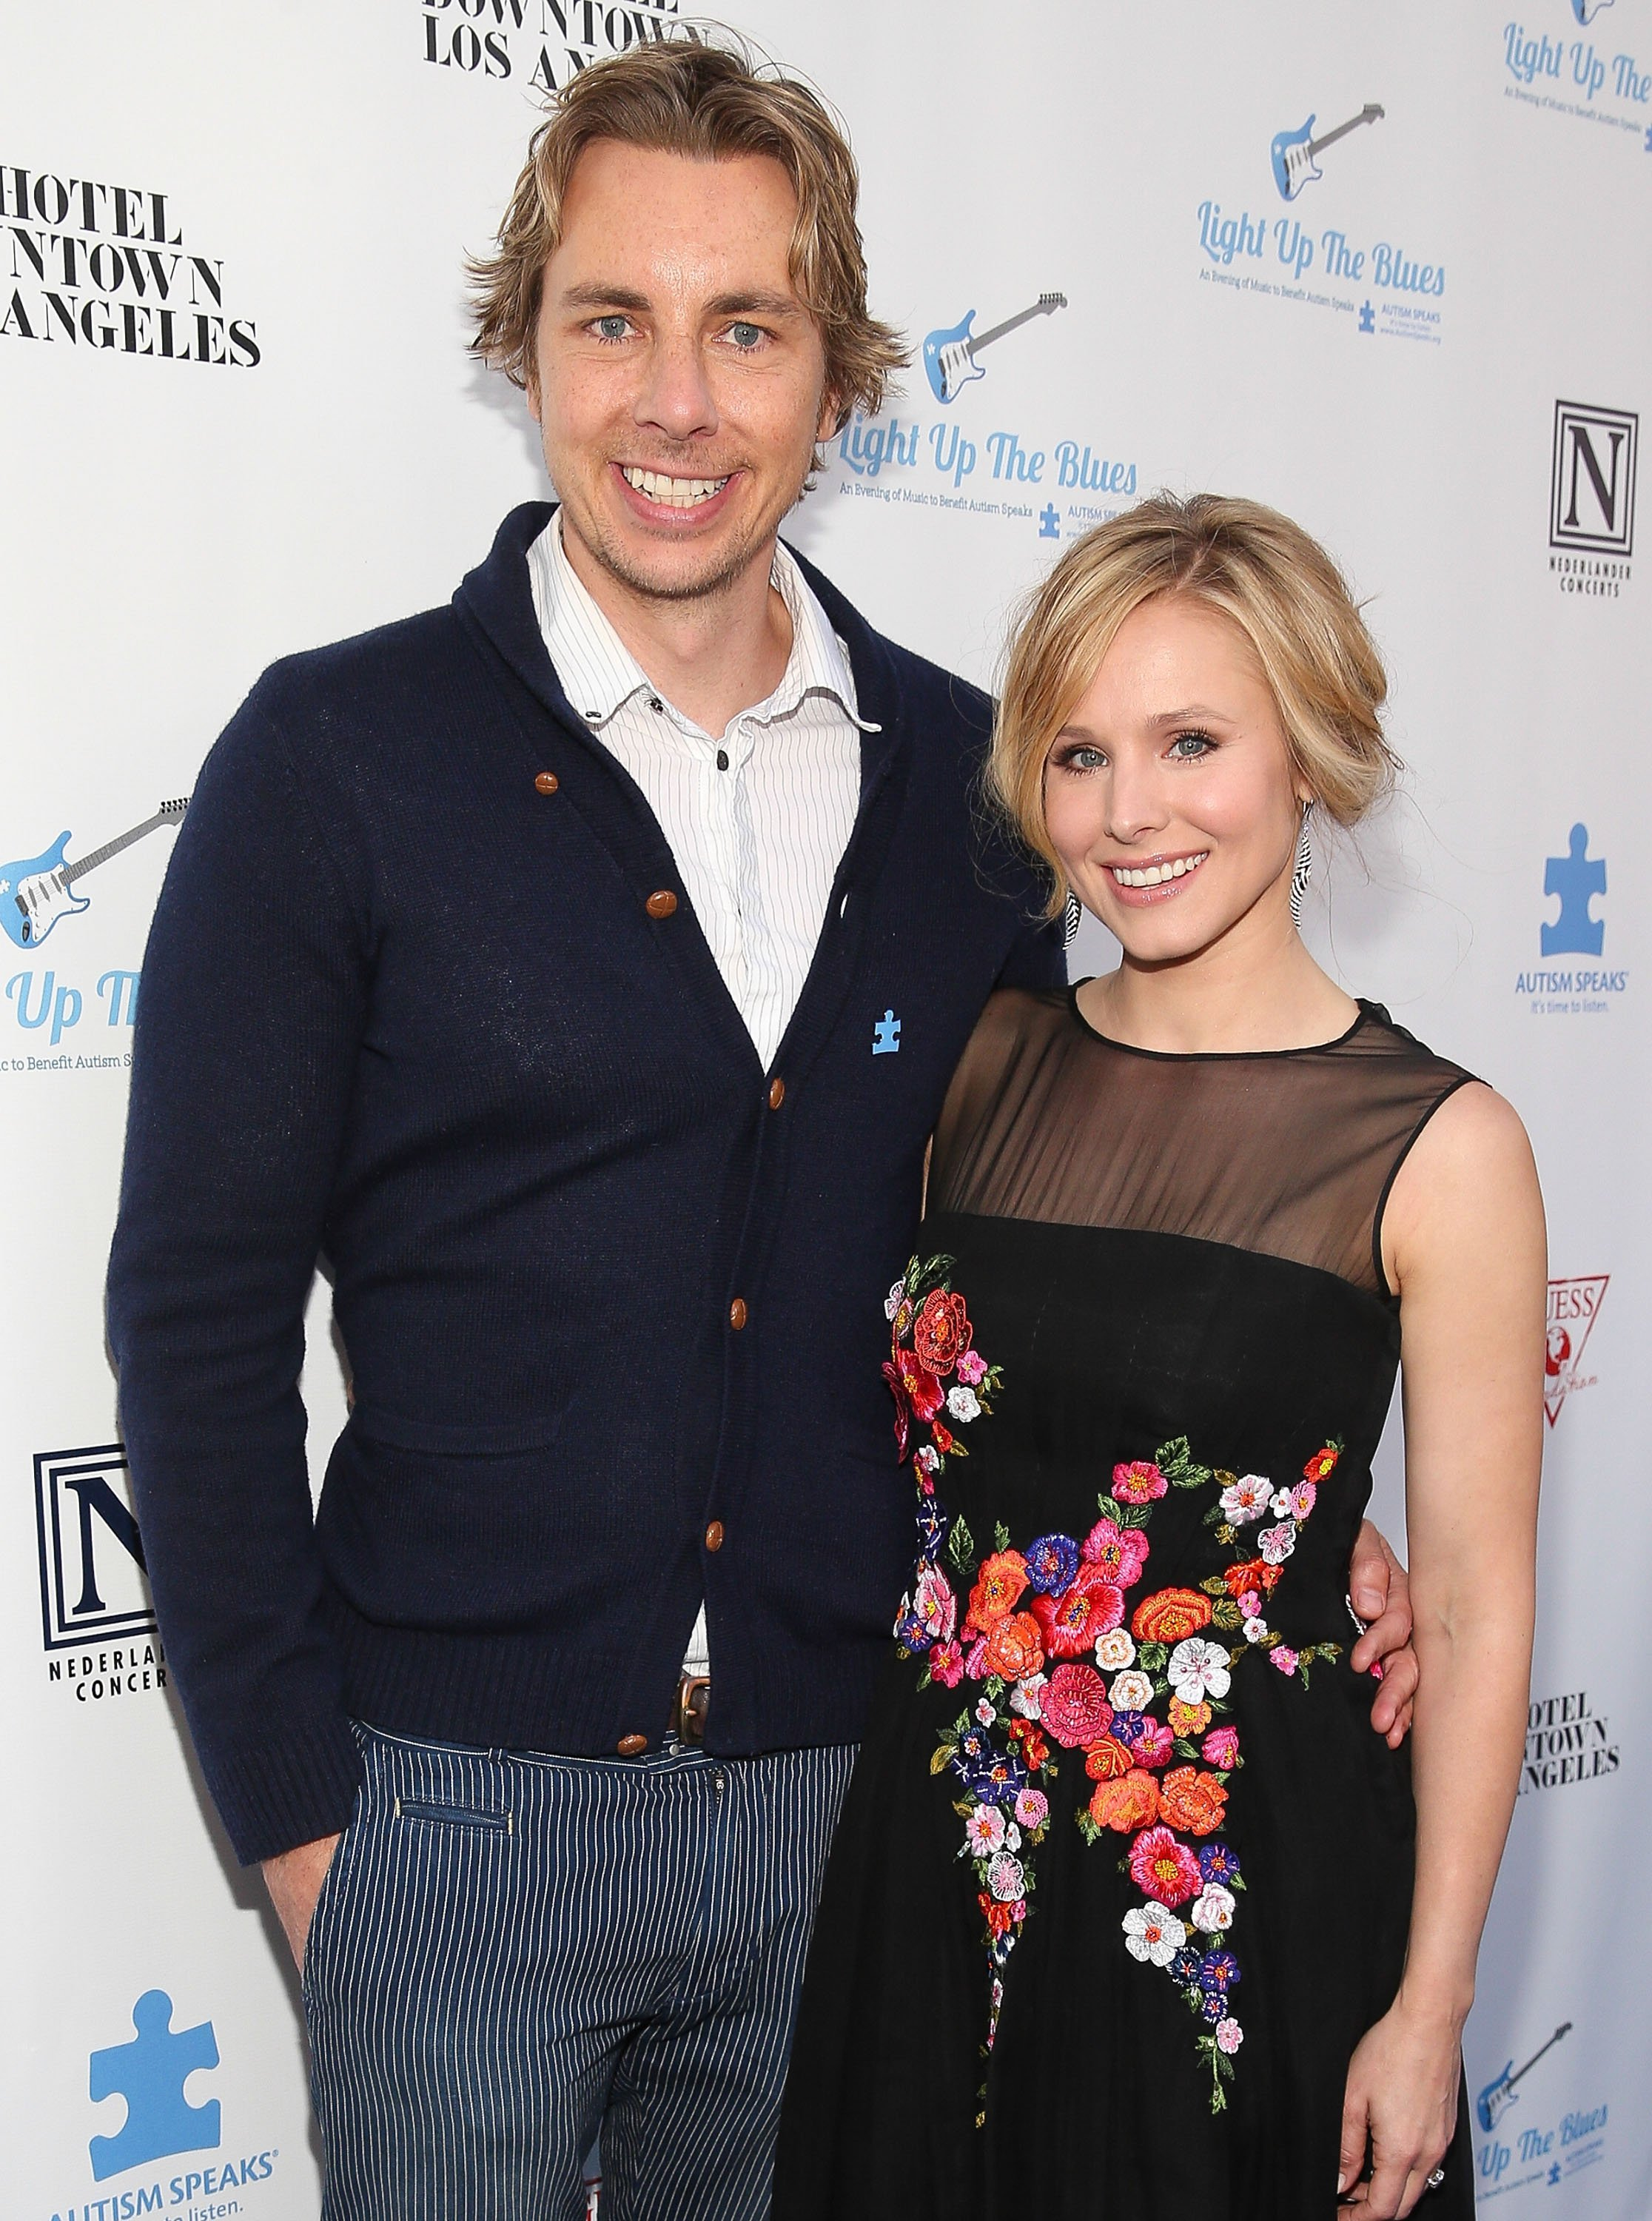 Dax Shepard (L) and actress Kristen Bell attend the 2nd Light Up The Blues Concert - An Evening Of Music To Benefit Autism Speaks at The Theatre At Ace Hotel on April 5, 2014, in Los Angeles, California. | Source: Getty Images.